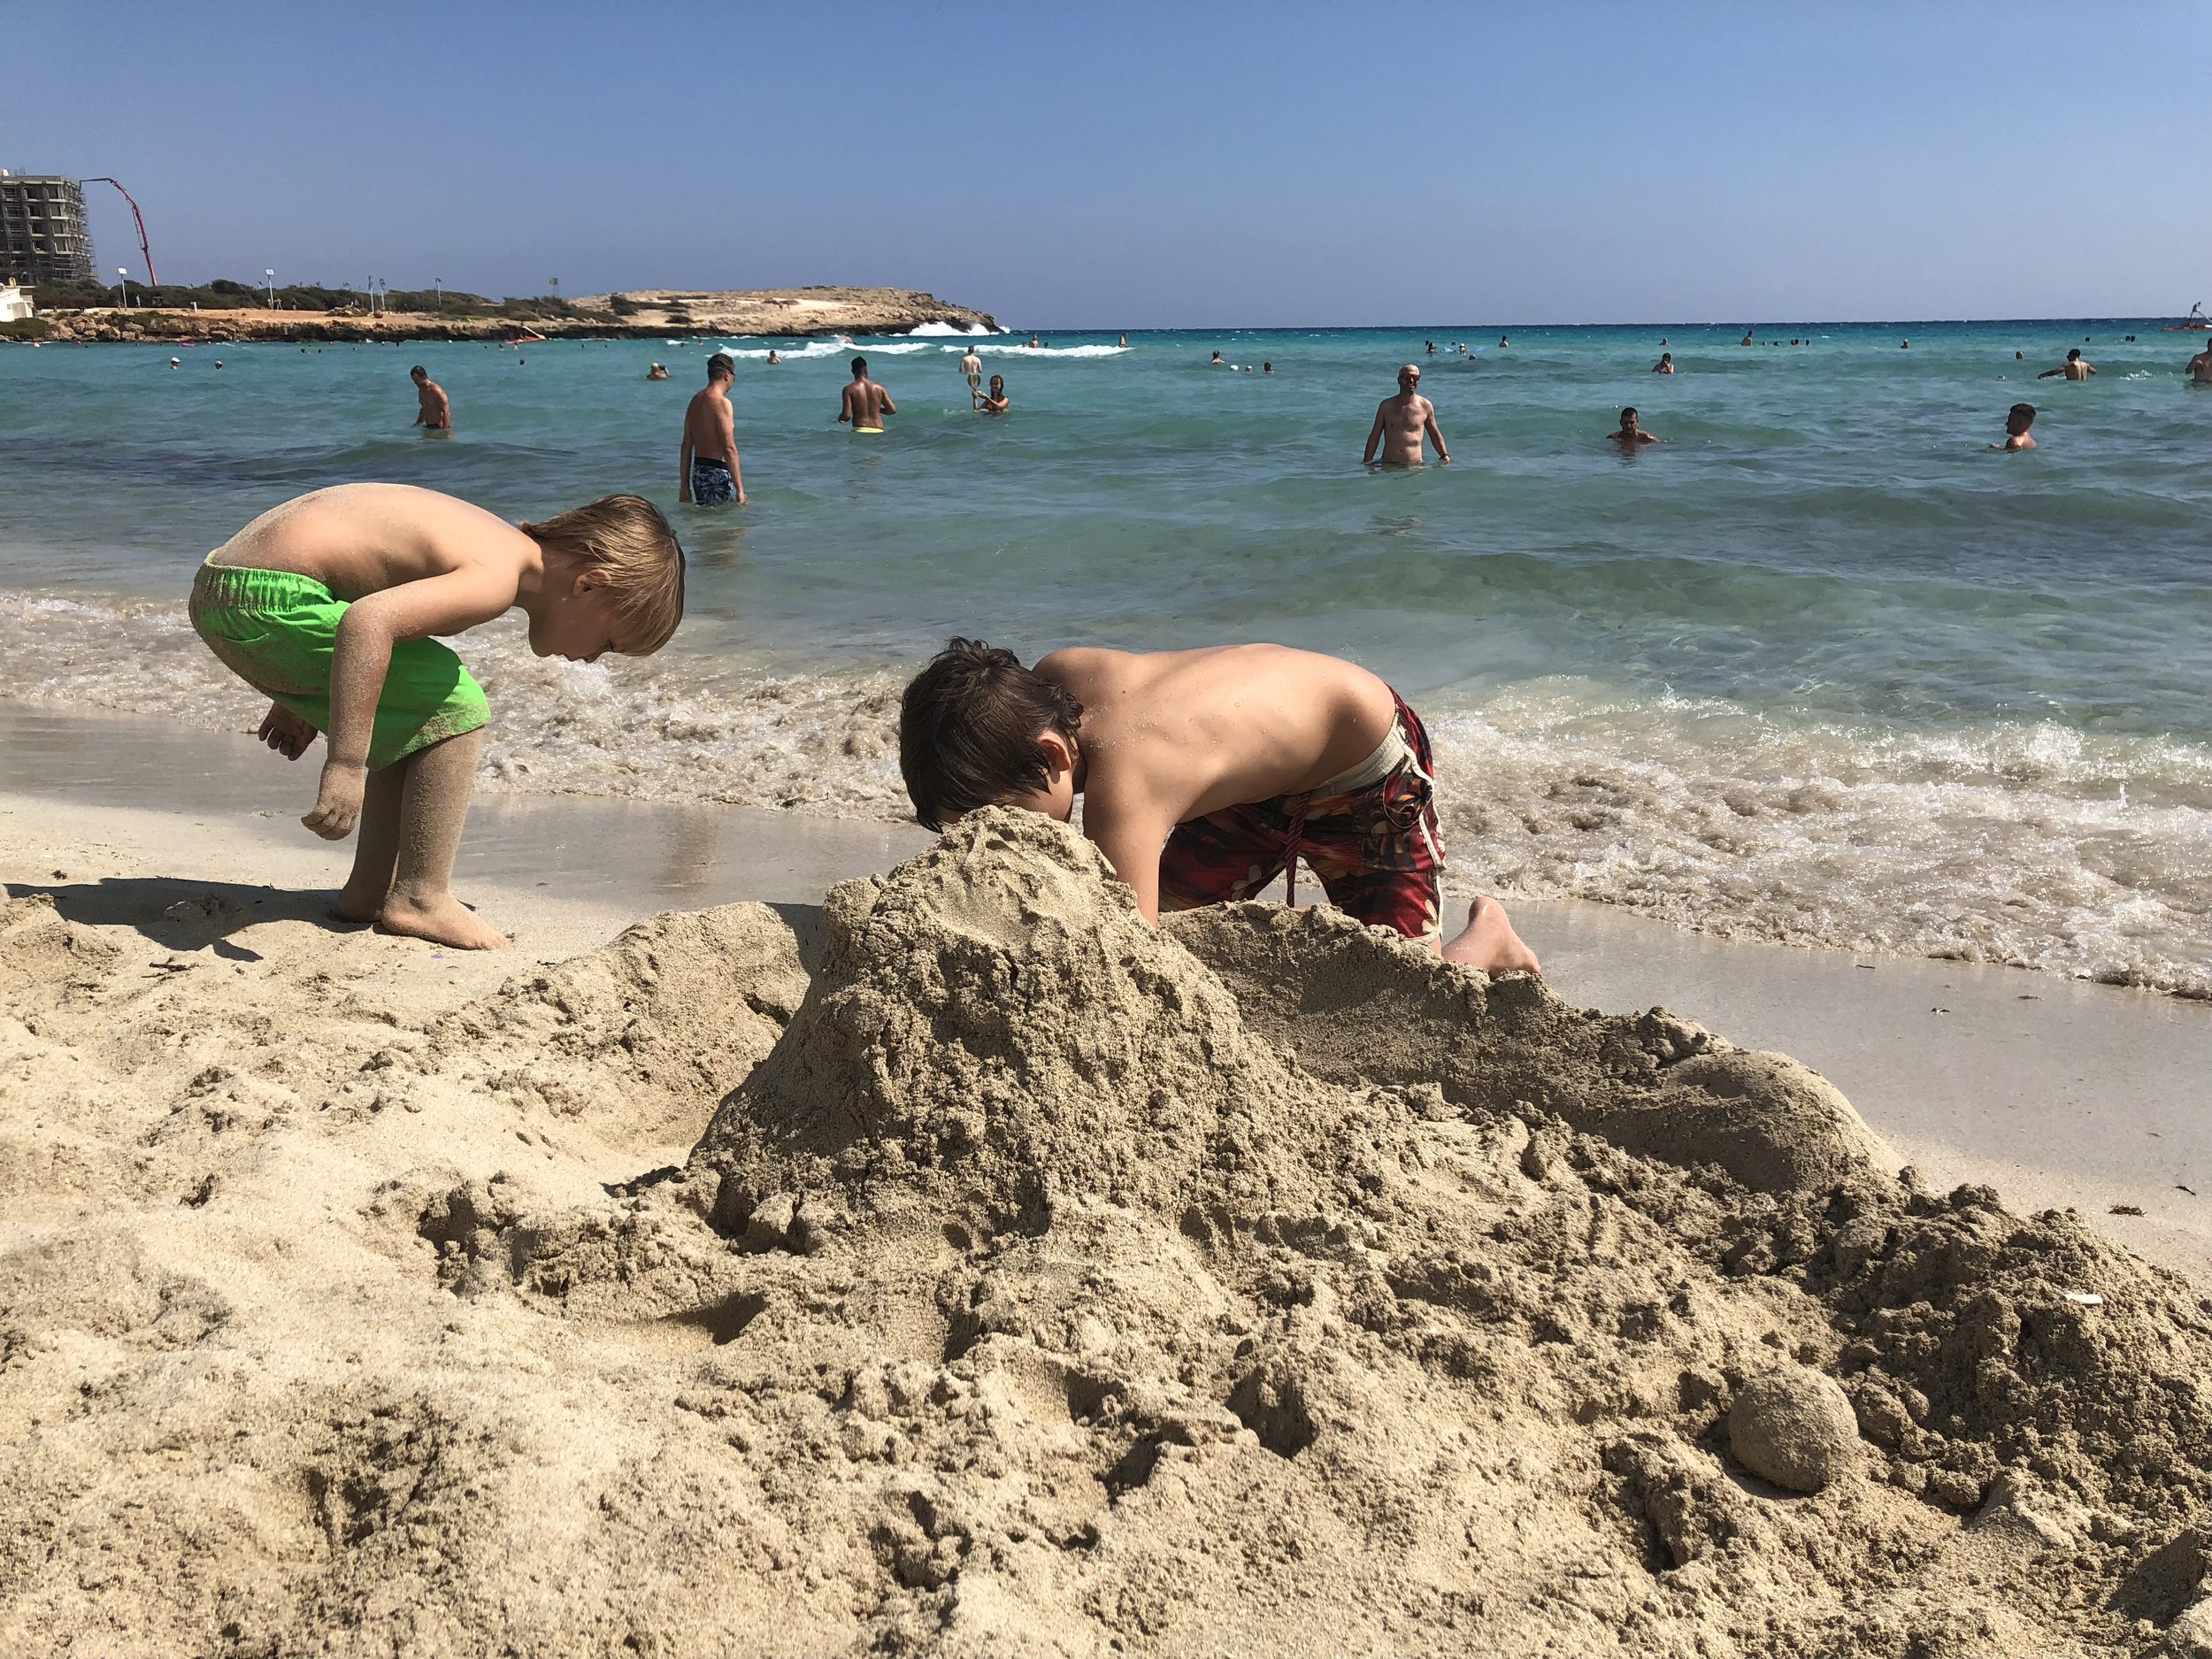 We arrived at north of Larnaca which had a beautiful beach and we made a huge sand castle, it looked amazing . We made a mouth and I could put my head inside which was really cool.